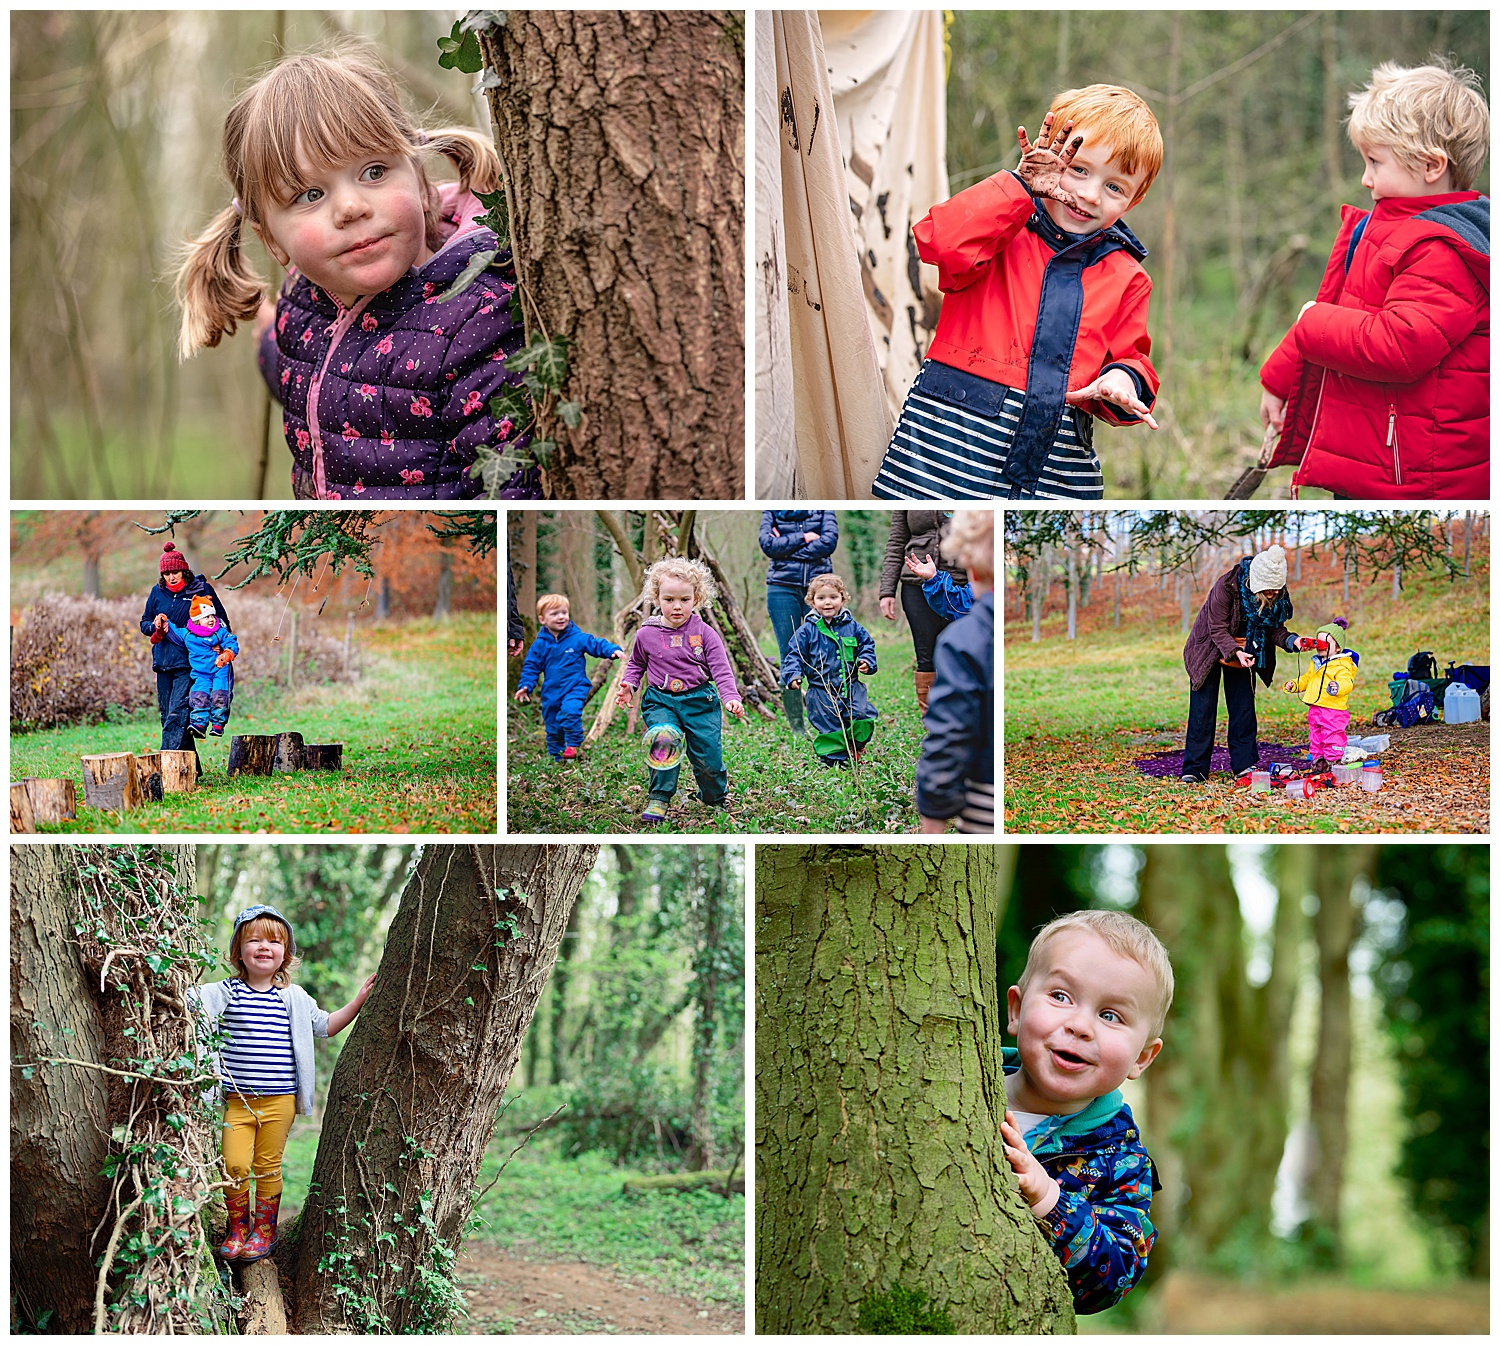 Portrait images of children playing at forest school taken by DBS approved forest school photographer Alexandra Tandy Photography